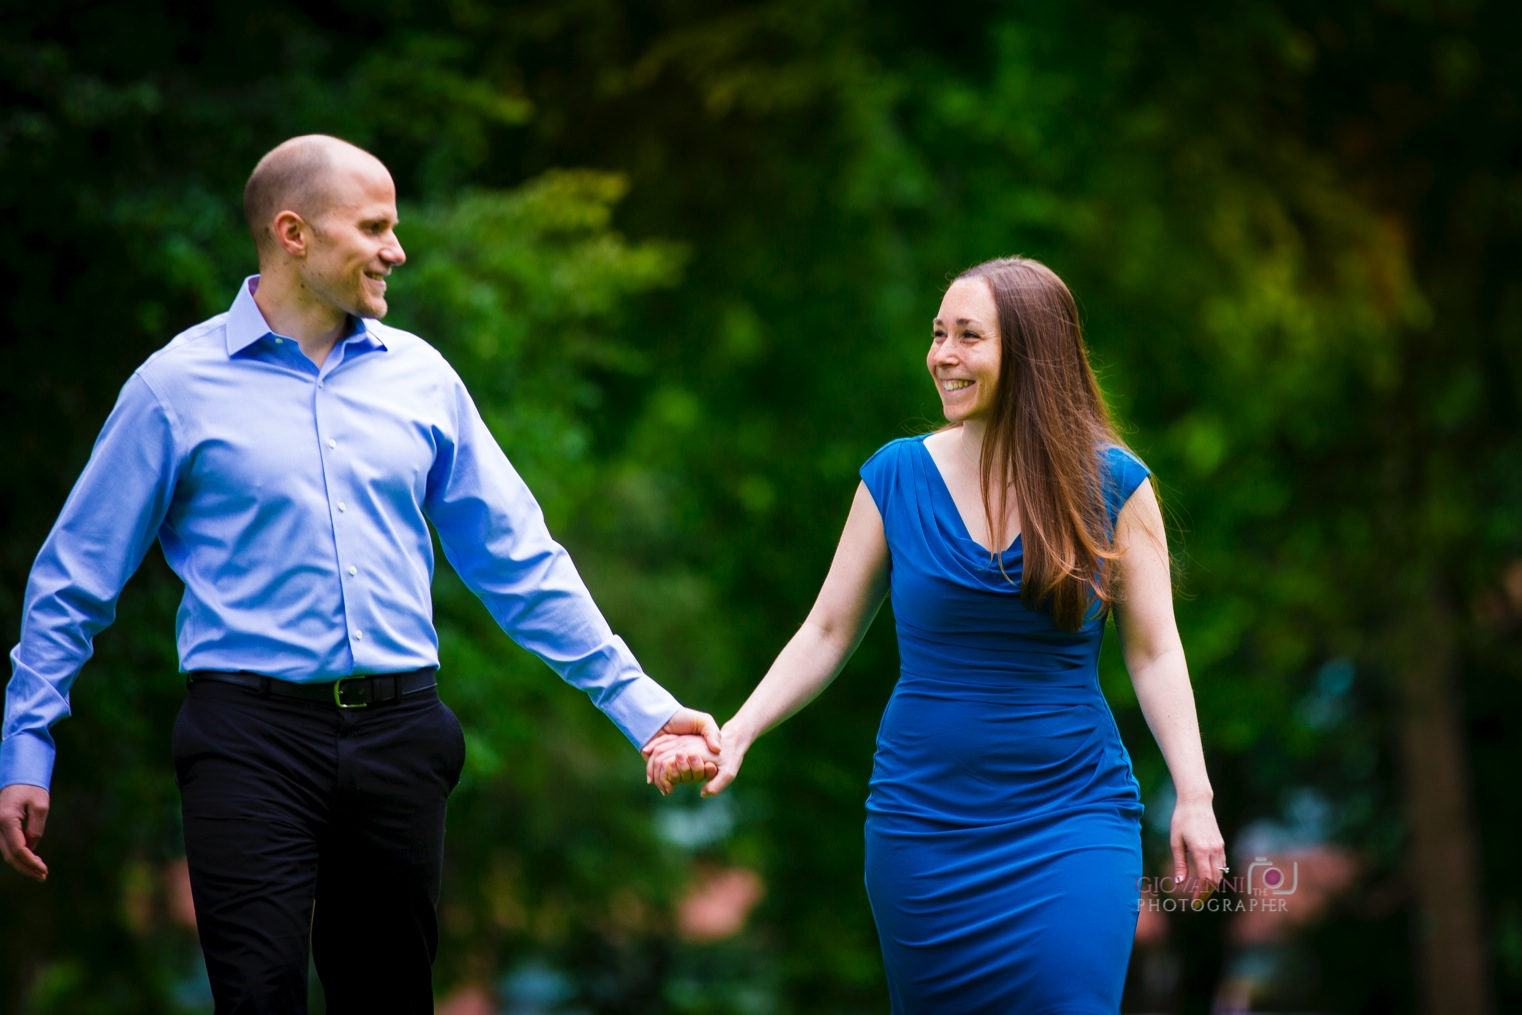 314A6709 Giovanni The Photographer Boston Wedding and Engagement Session Katey and Tom 06-06-18 WM35.jpg